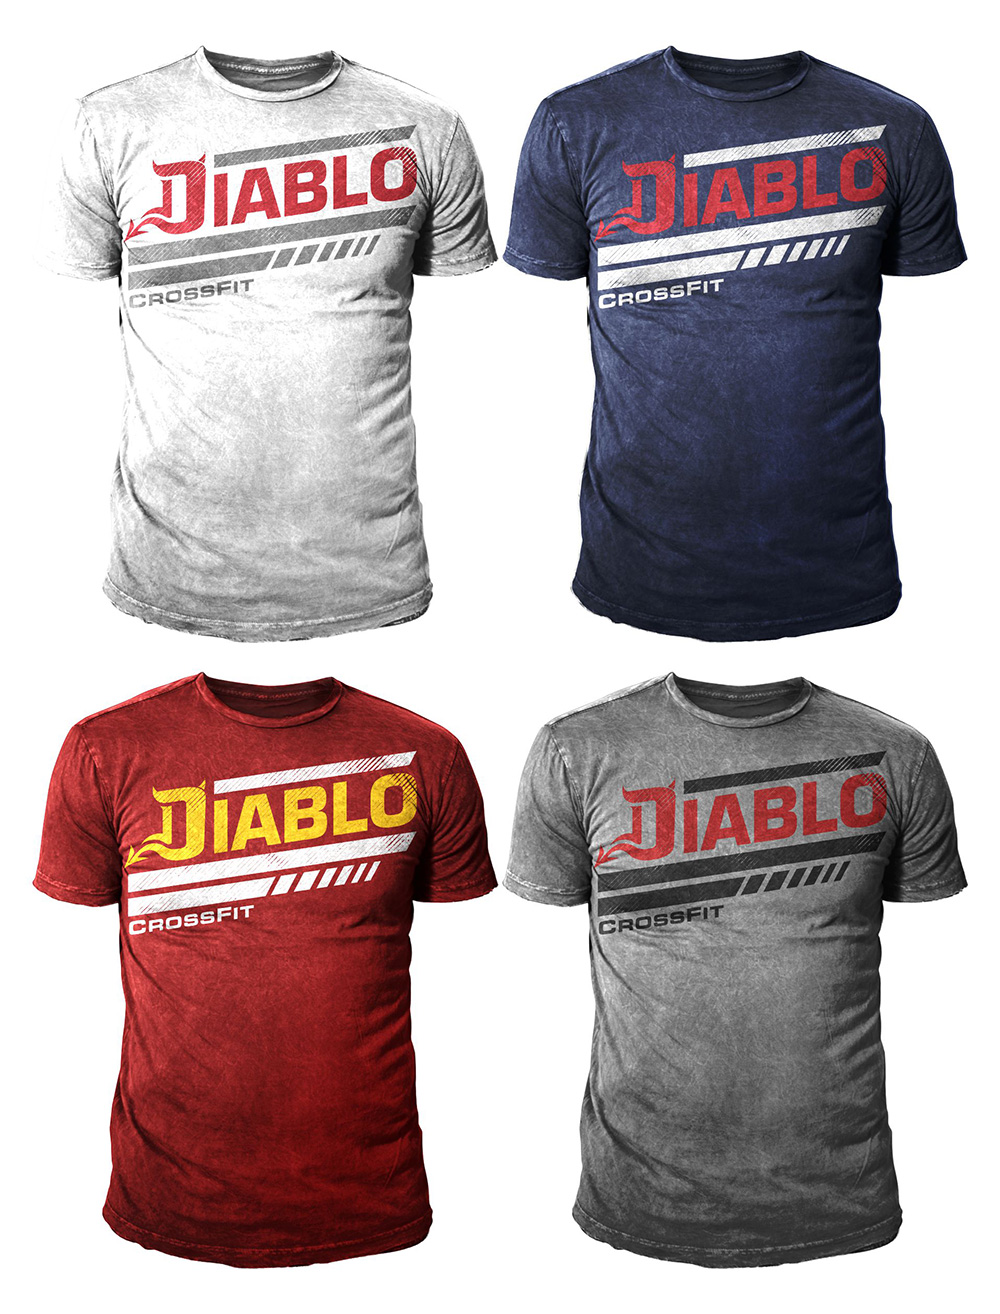 playful modern t shirt design for diablo fitness engineering by 777sky design 7906434. Black Bedroom Furniture Sets. Home Design Ideas